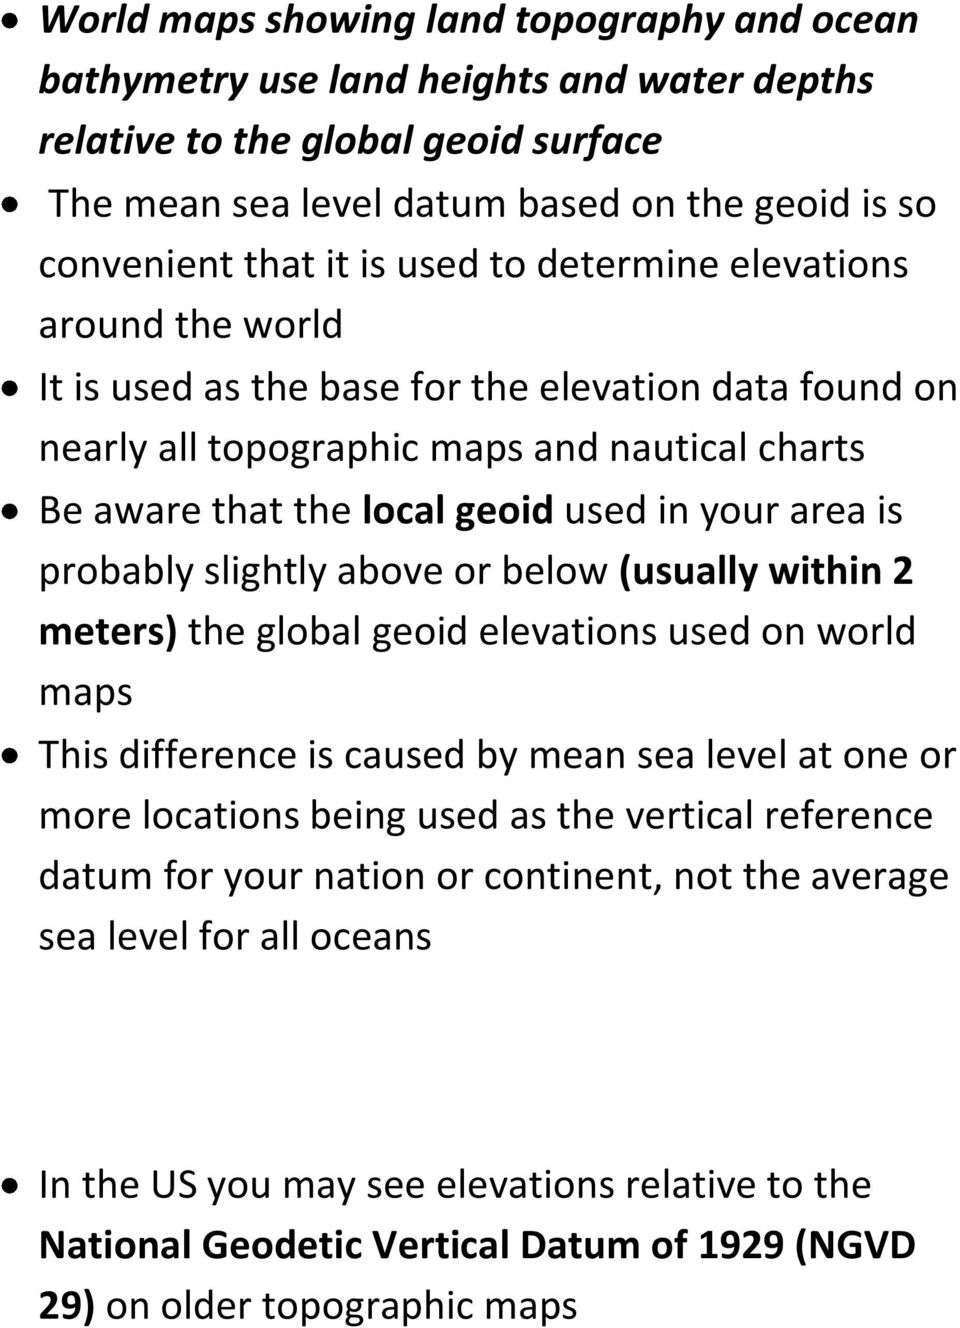 probably slightly above or below (usually within 2 meters) the global geoid elevations used on world maps This difference is caused by mean sea level at one or more locations being used as the